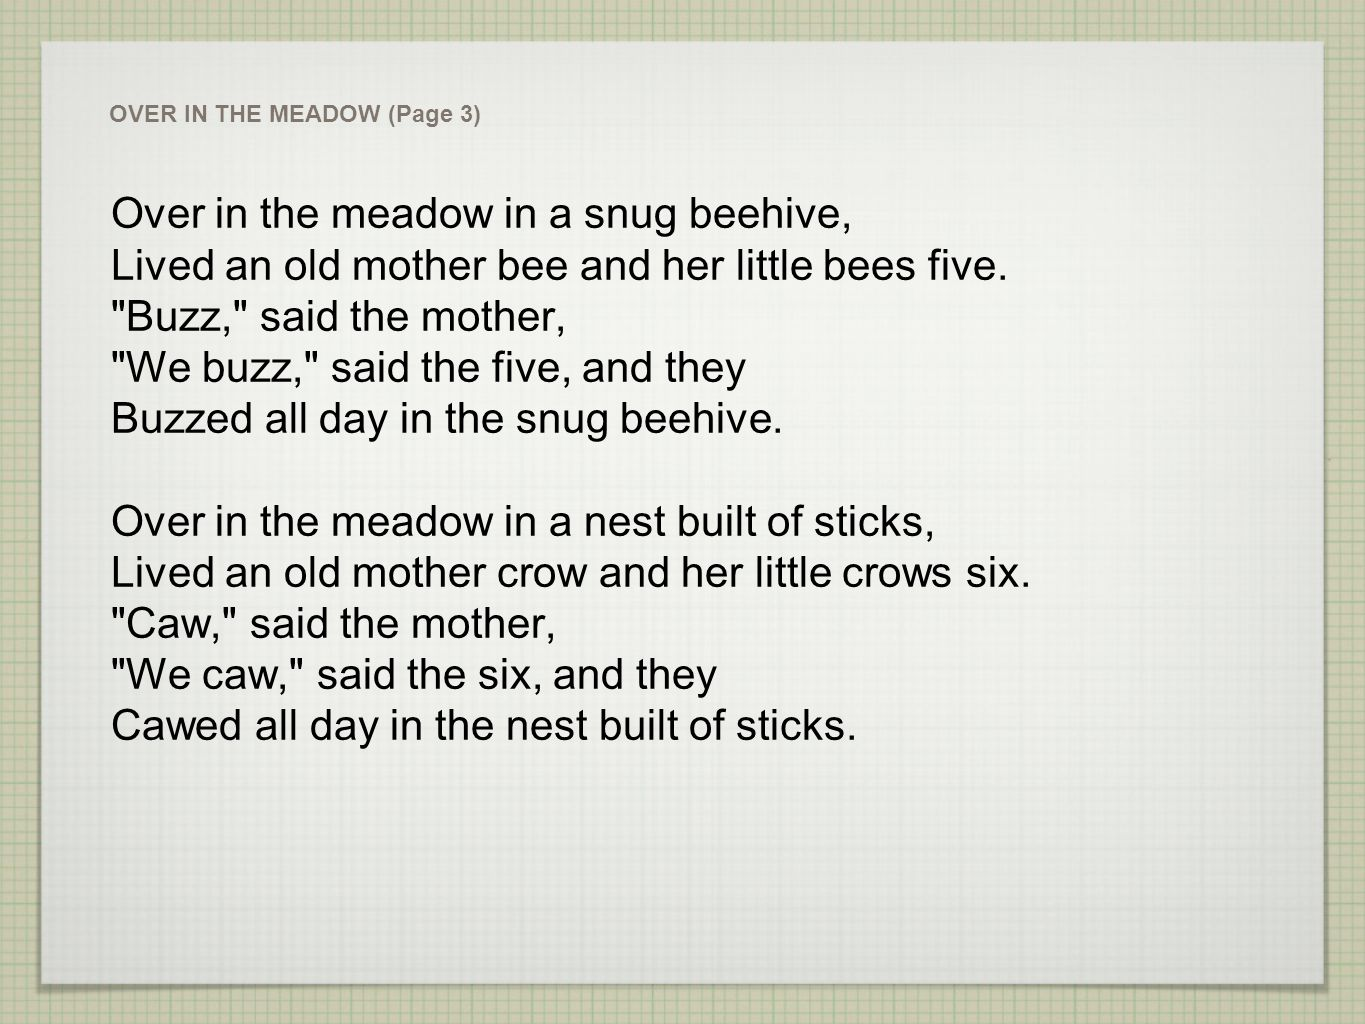 Over in the meadow in a snug beehive, Lived an old mother bee and her little bees five.